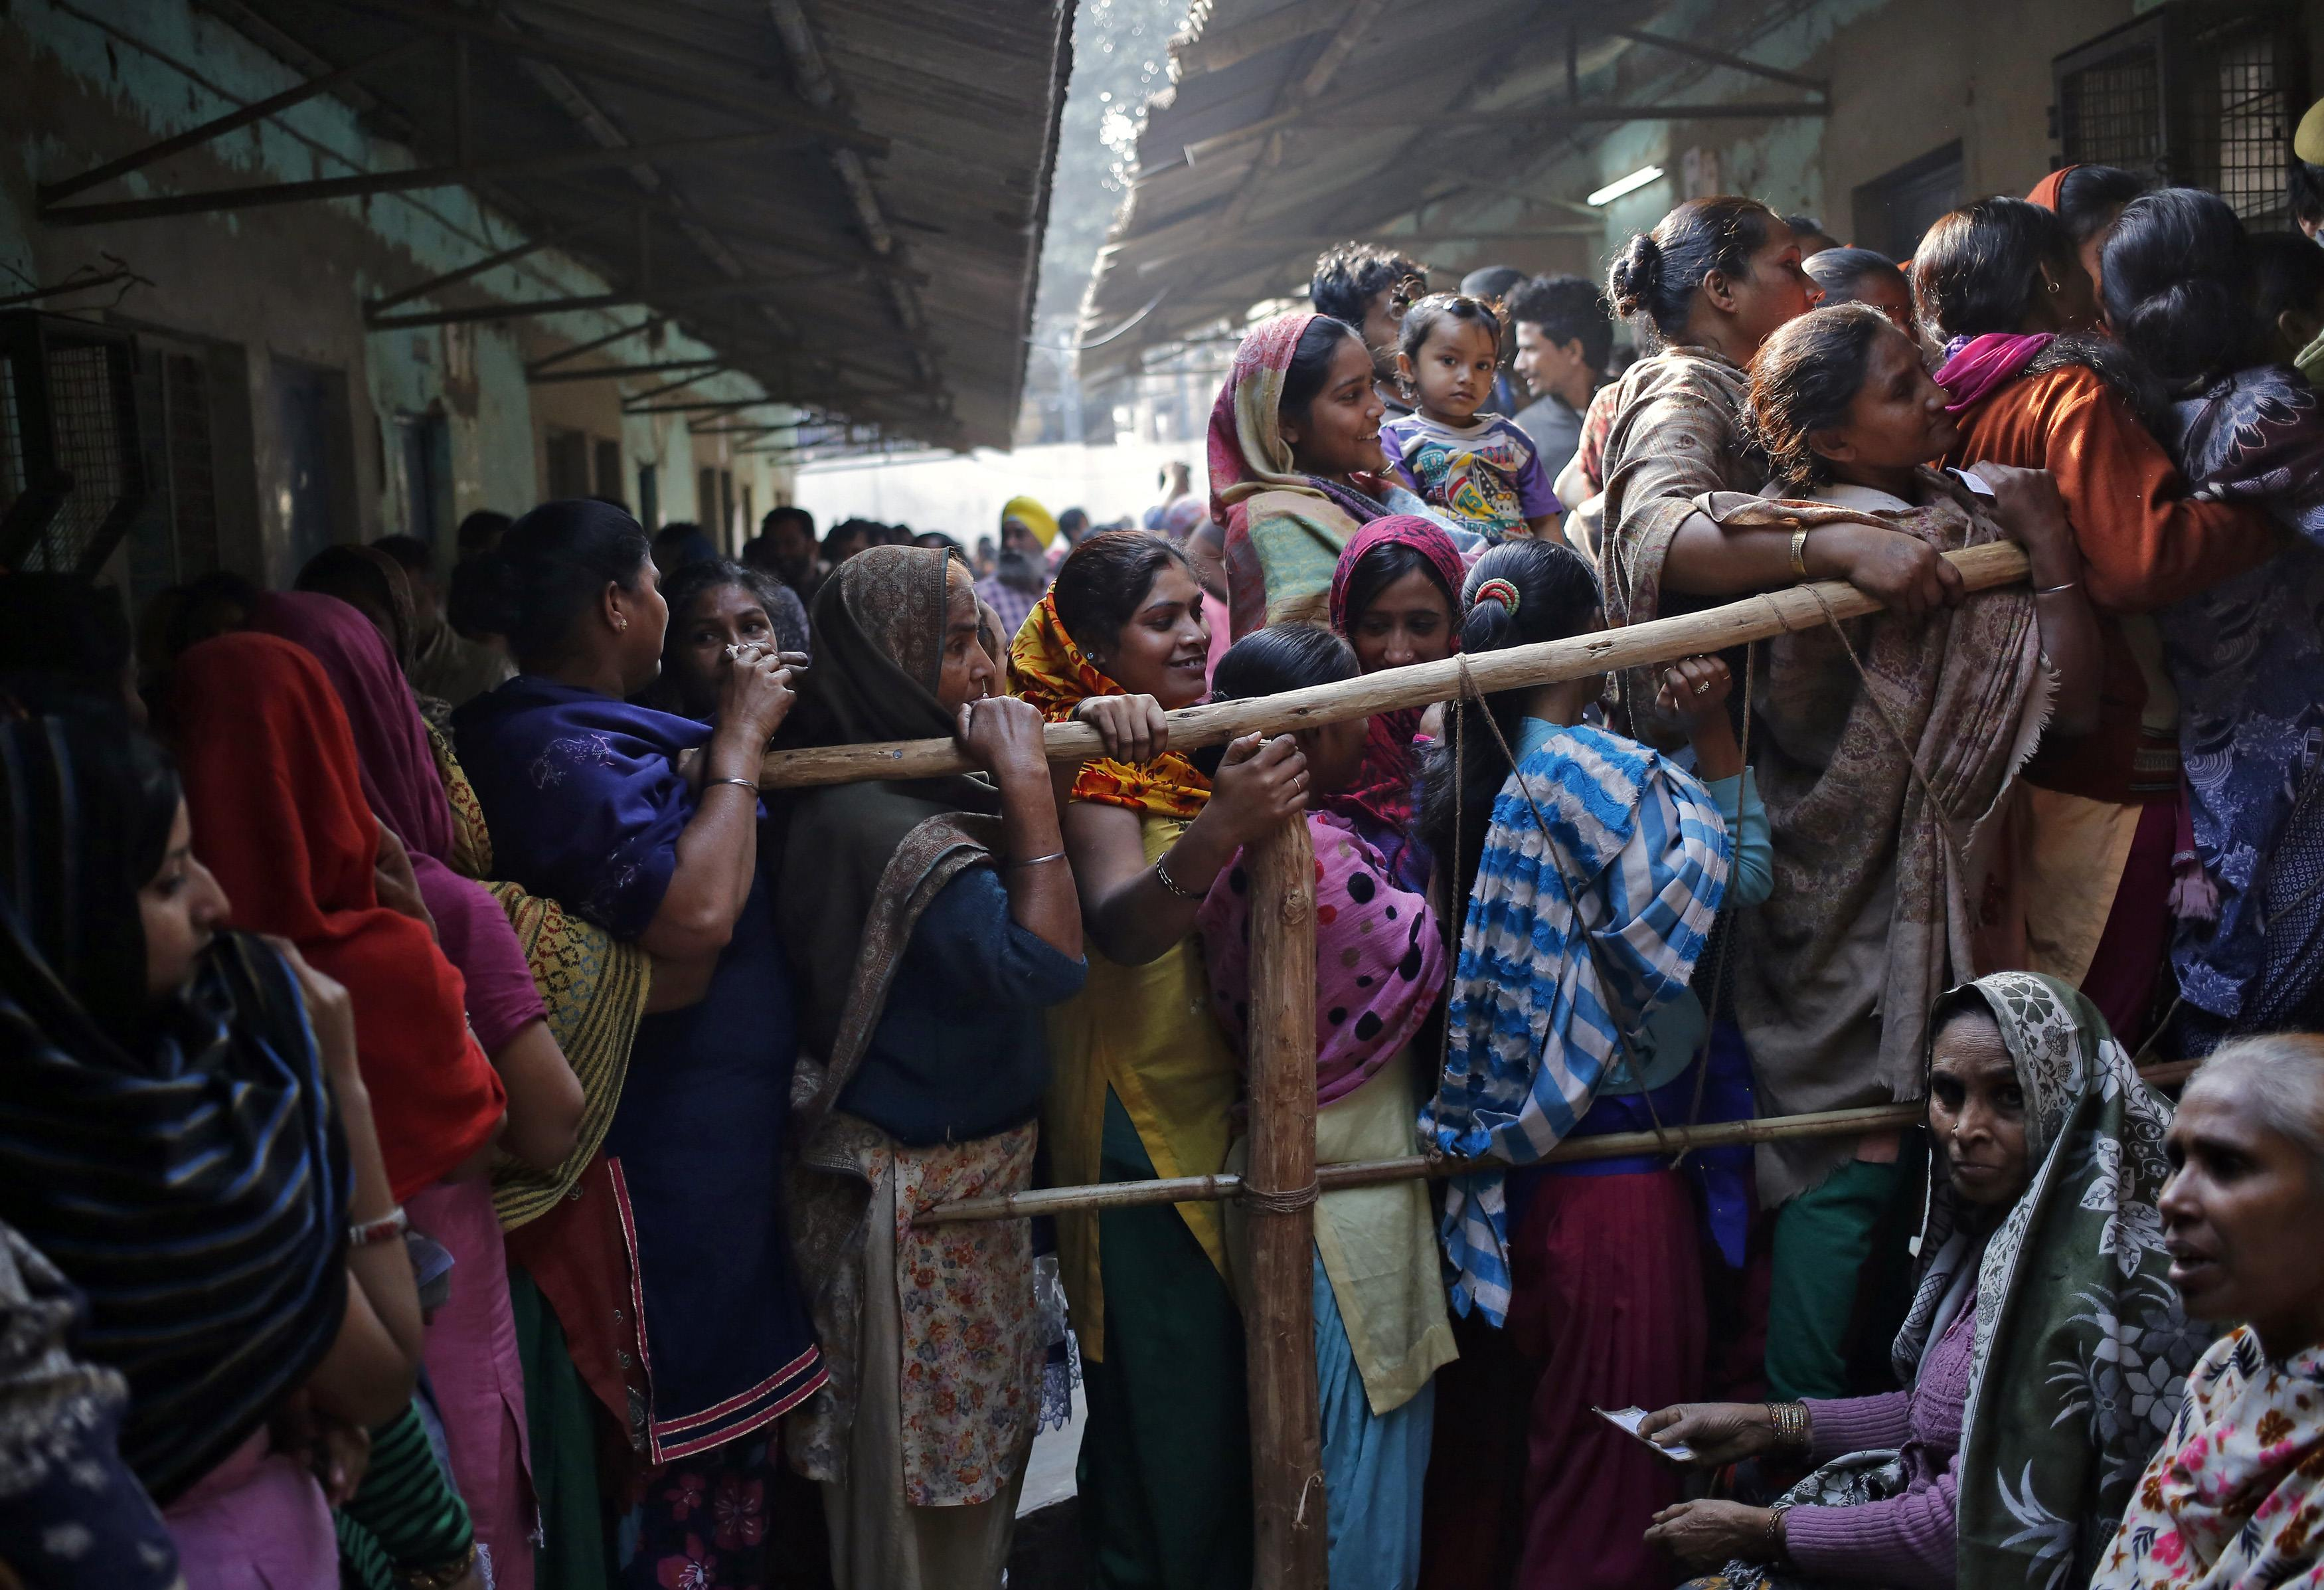 3.Voters line up to cast their votes at a polling station during the state assembly election in New Delhi February 7, 2015. Photo: Reuters